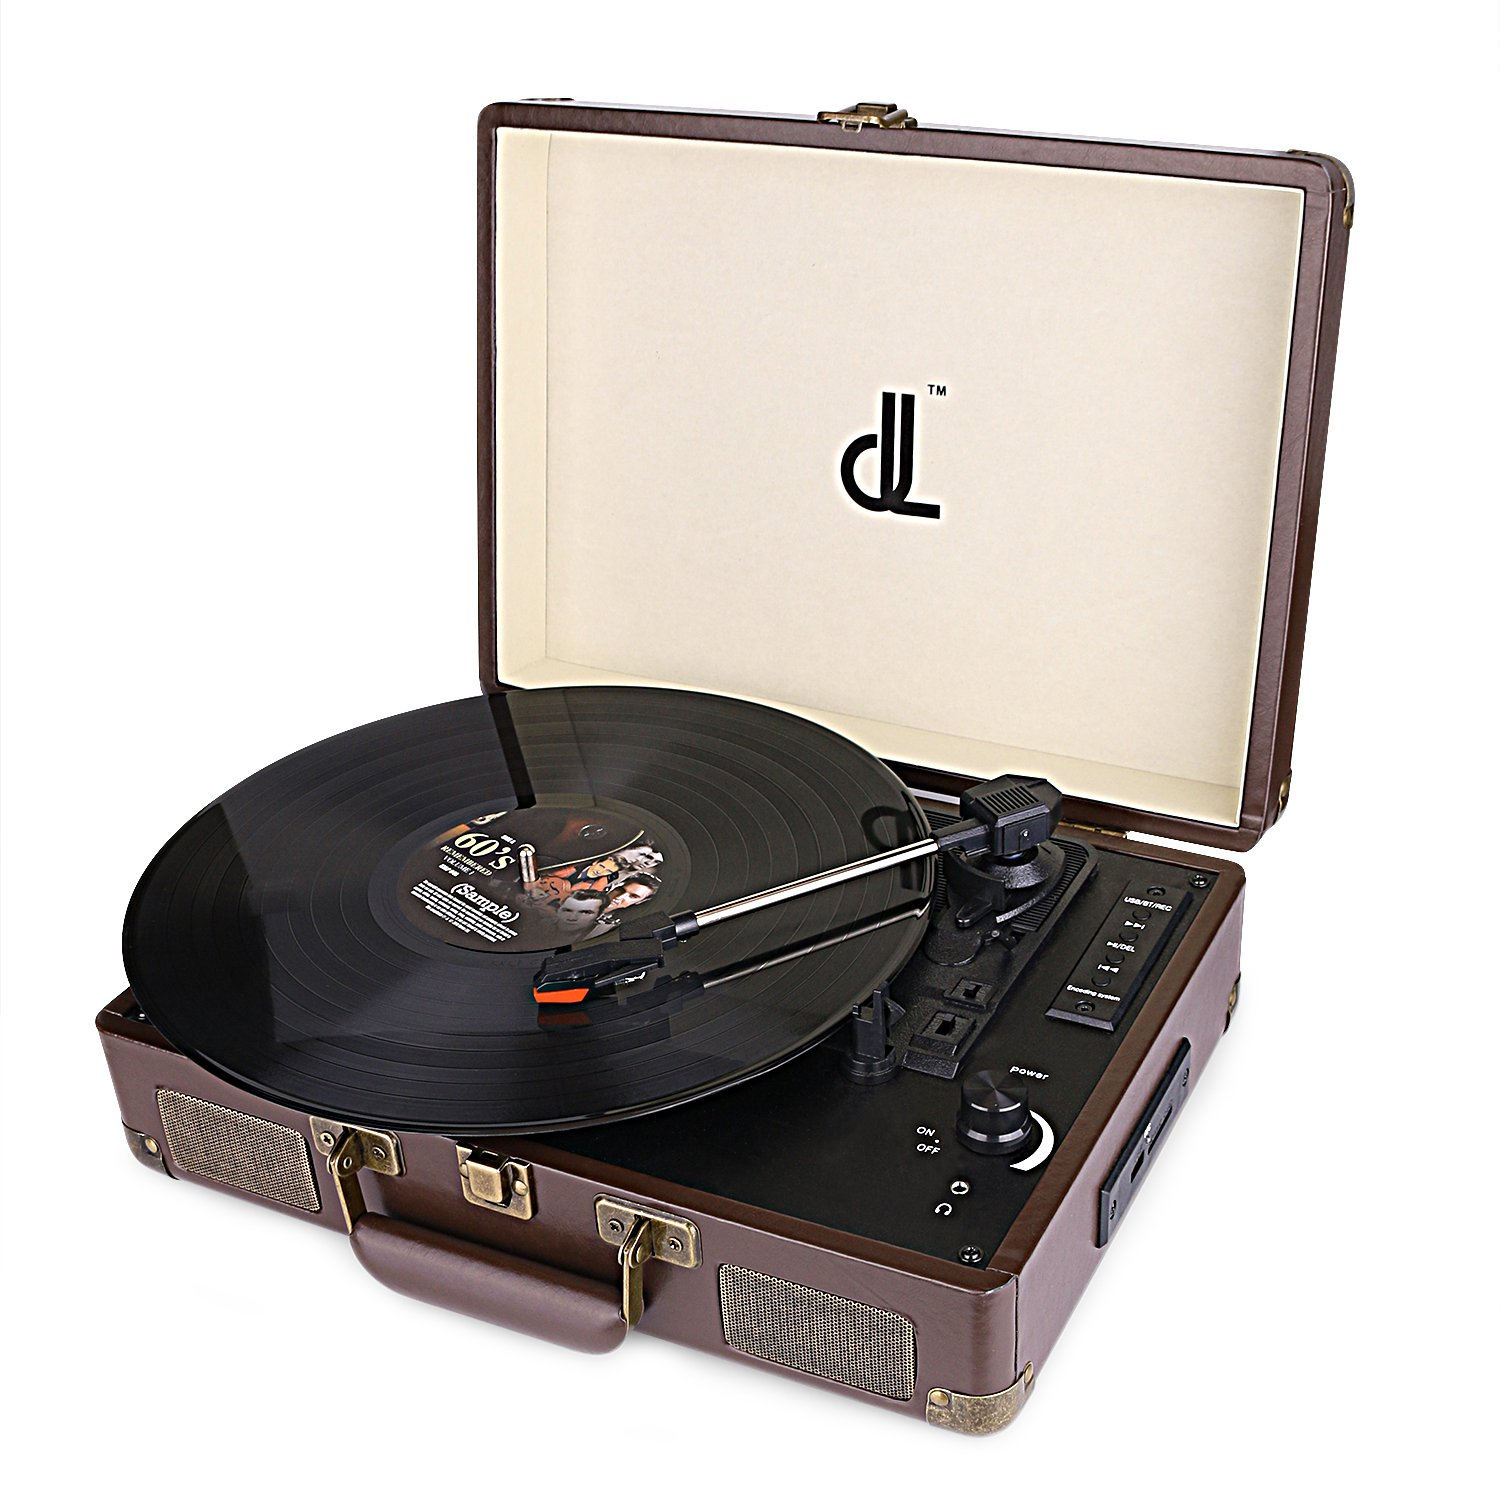 D&L Vintage Leather Bluetooth Record Player Portable Suitcase Turntable, 3 Speed 33/45/78, USB Play and Encoding,Stereo Speaker Recording Player